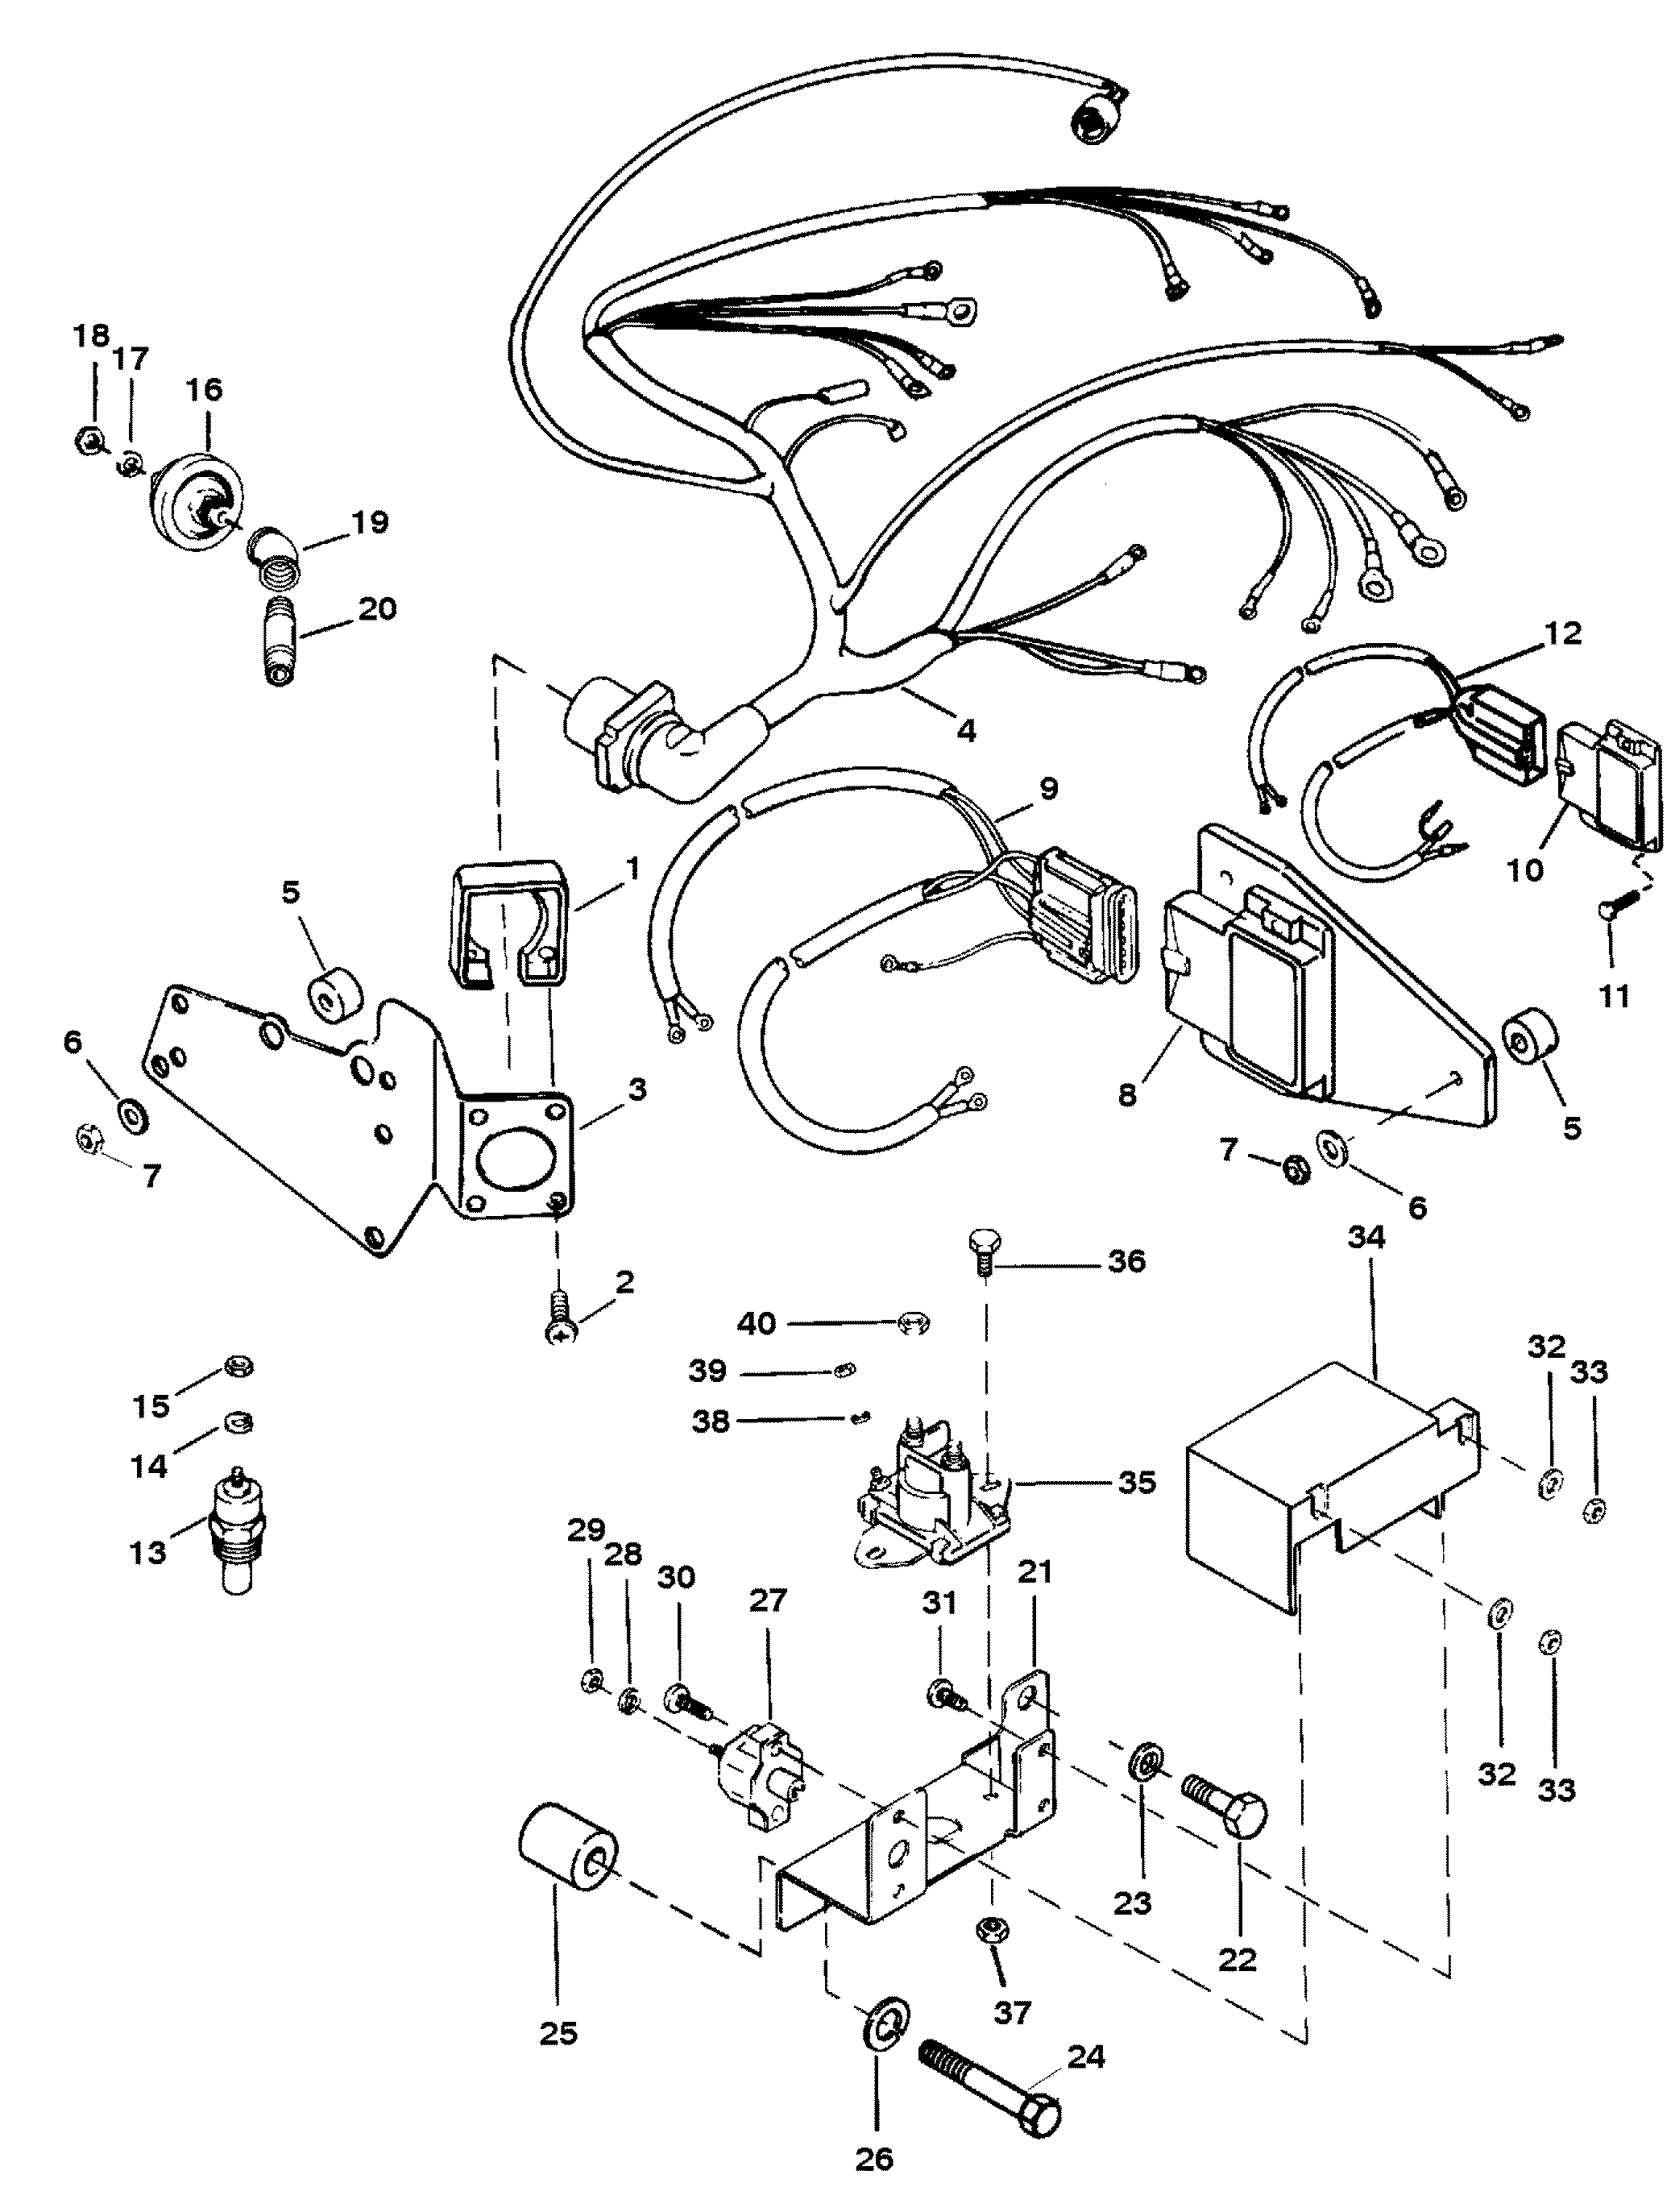 mercury mercruiser 5 7l mie gm 350 v 8 1994 1995 0f622151 thru mercruiser 120 wiring -diagram mercury mercruiser 5 7l mie gm 350 v 8 1994 1995 0f622151 thru 0f746099 wiring harness and electrical components